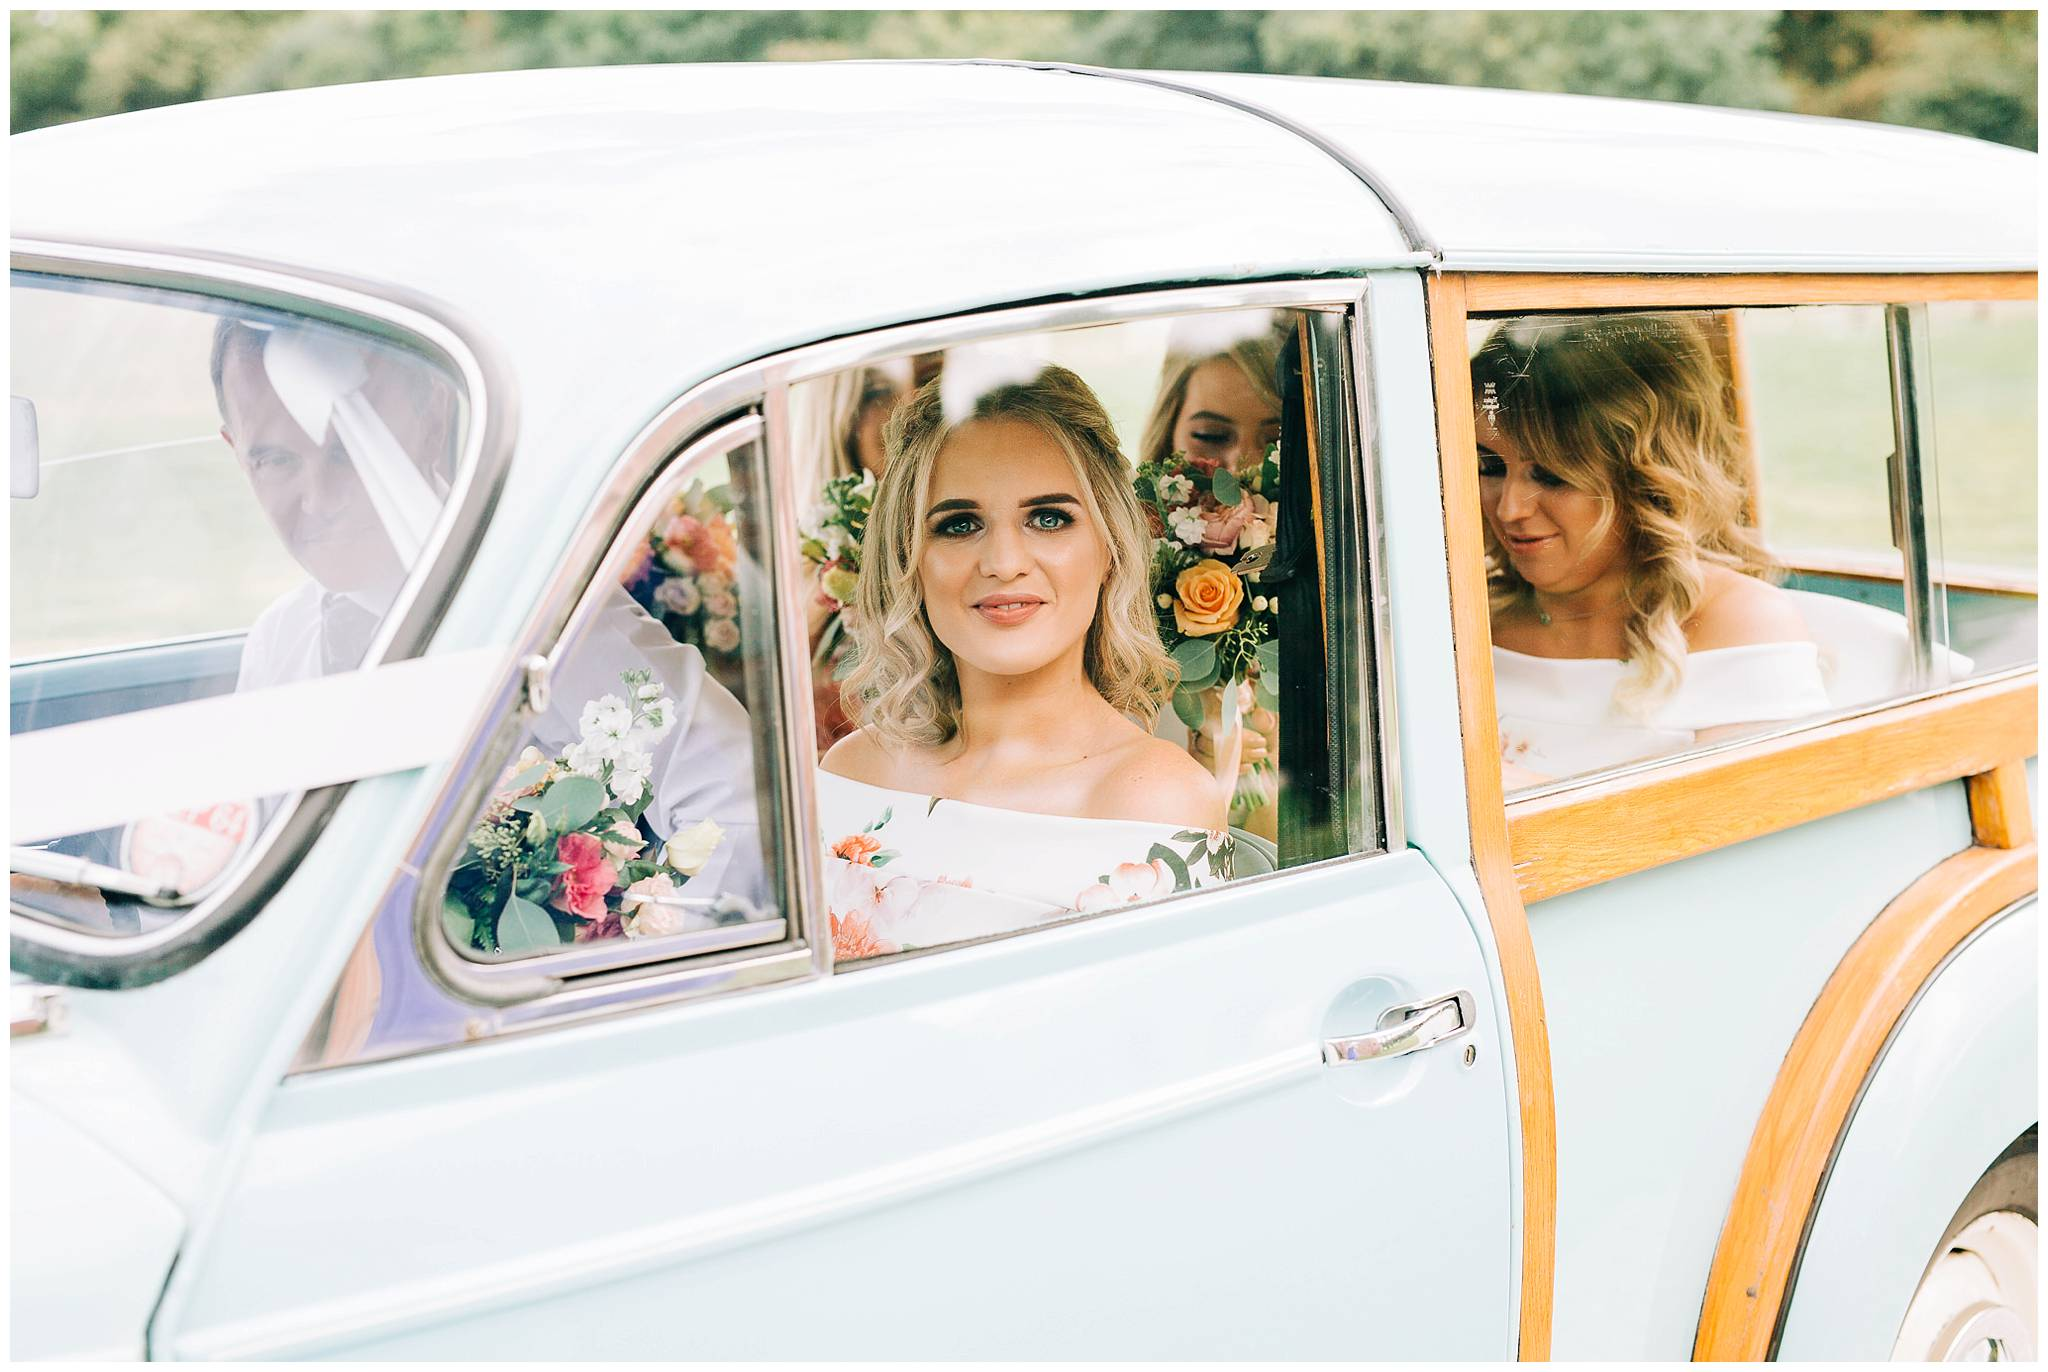 Chic Summer Wedding at Hazel Gap Barn - Nottinghamshire Photographer17.jpg